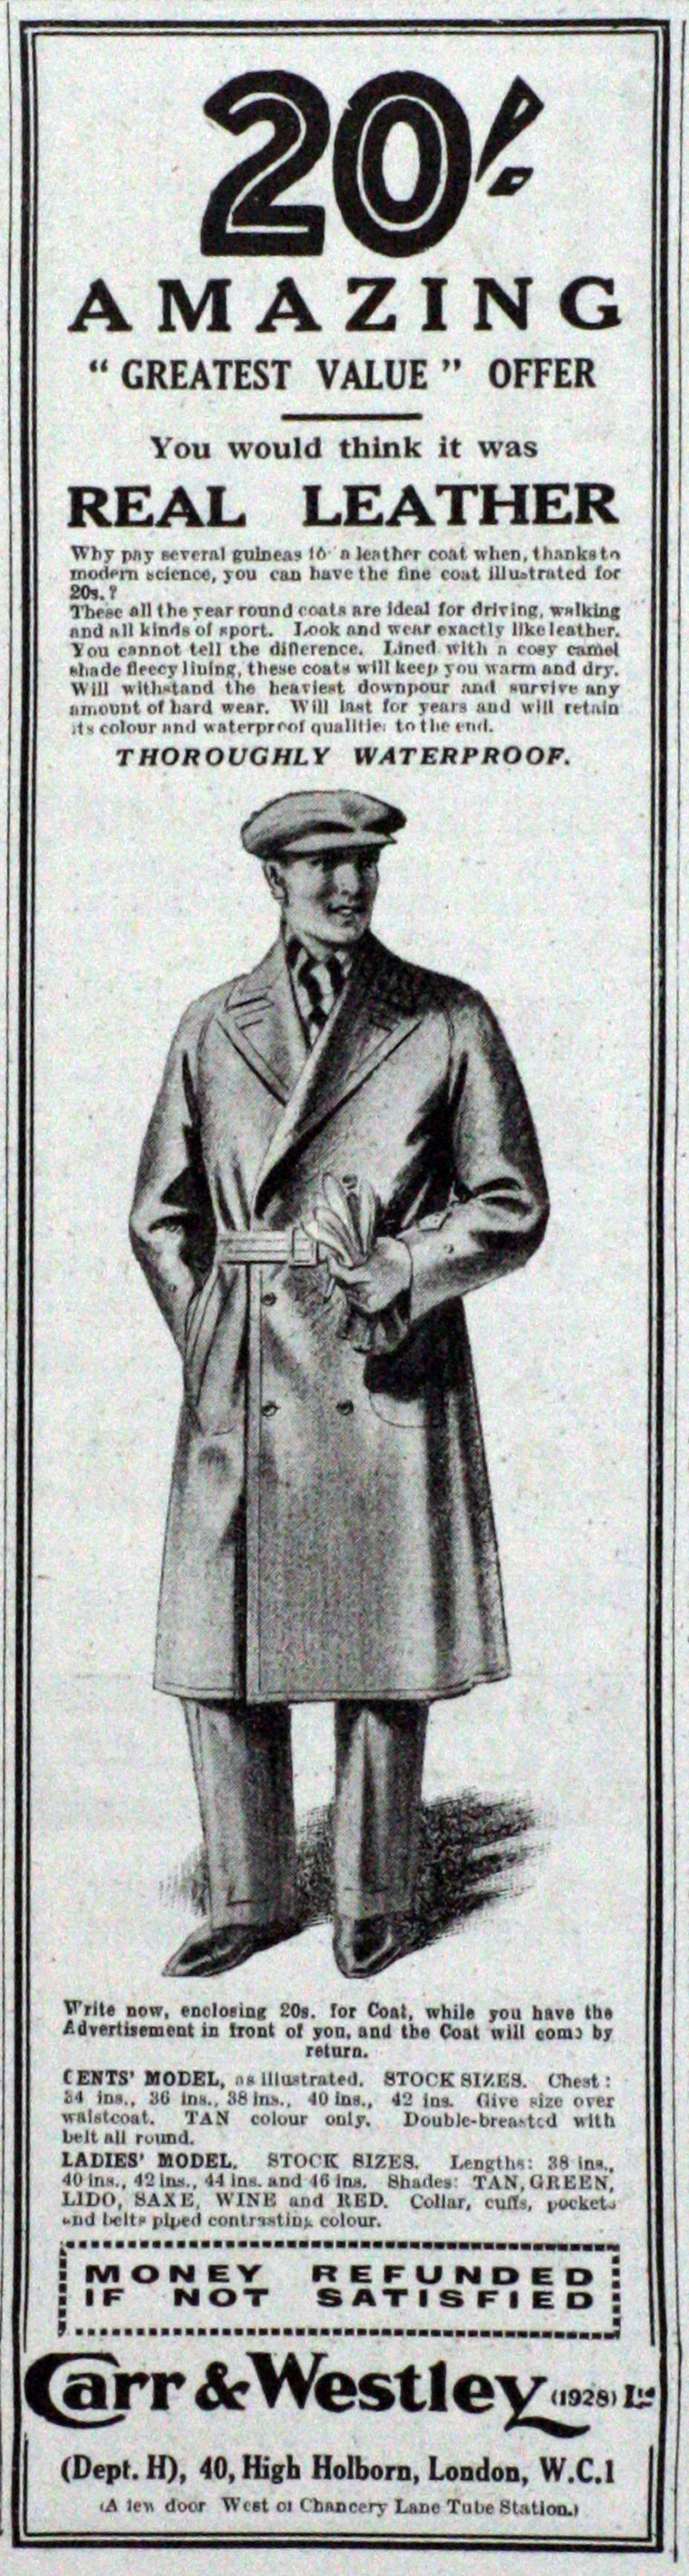 Carr and Westley 1929 advert